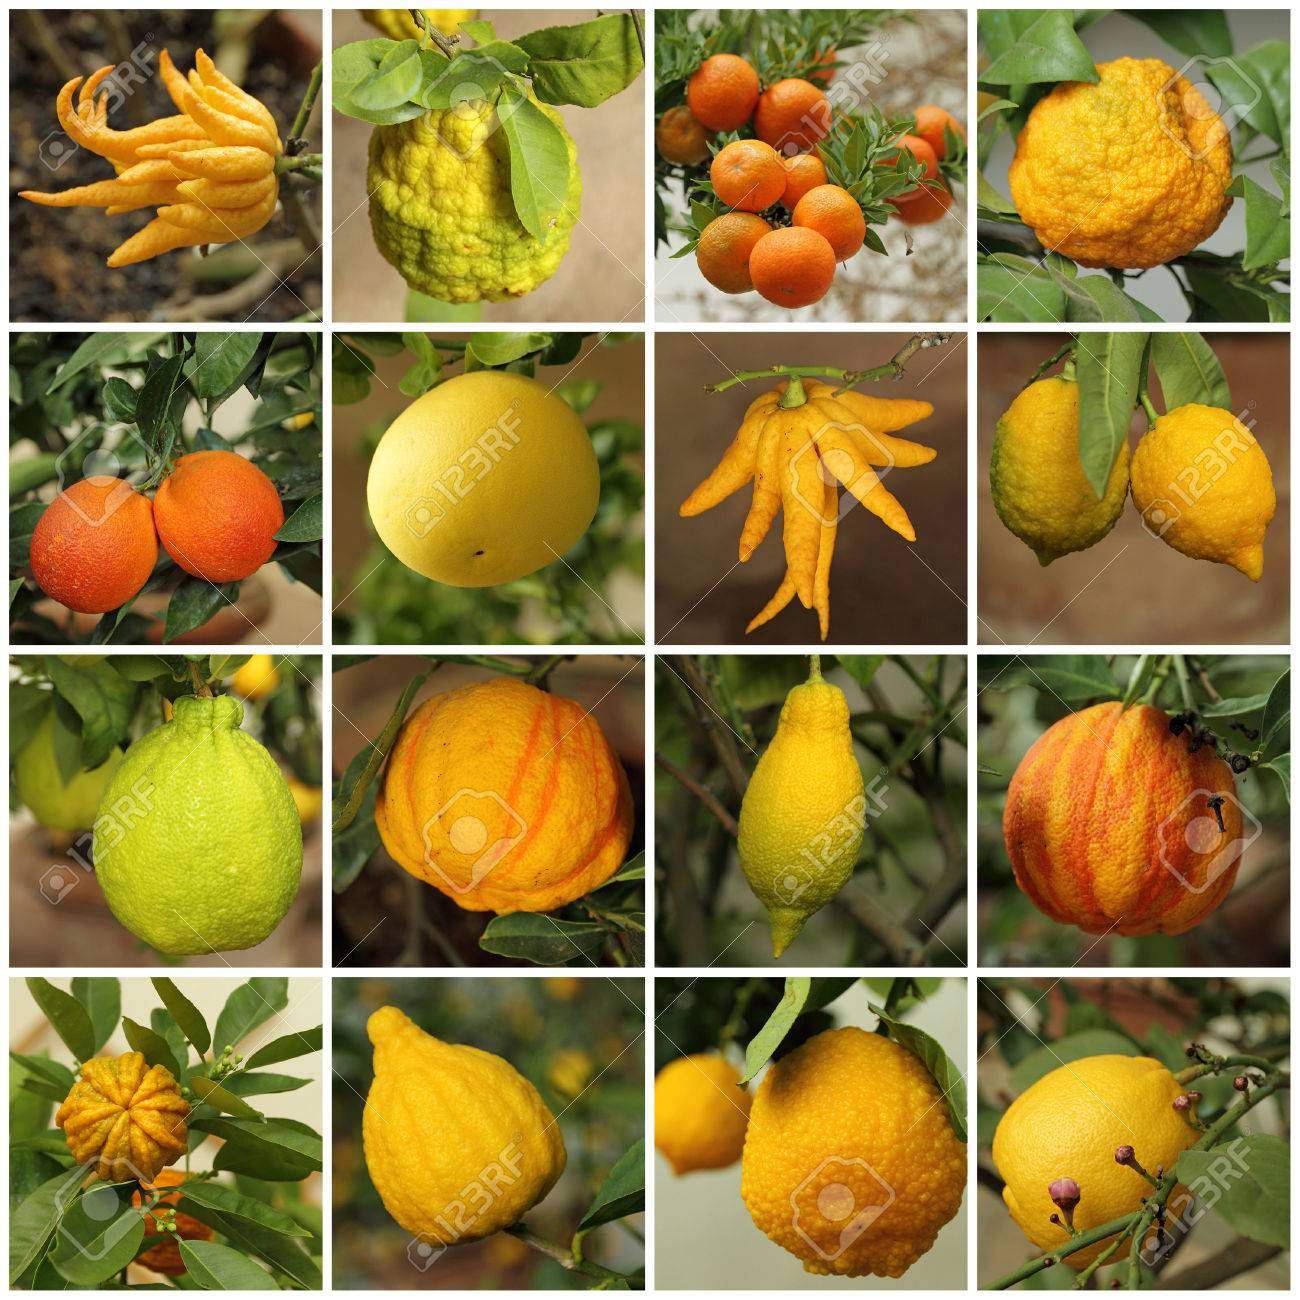 collage with images of various citrus fruits growing in historic